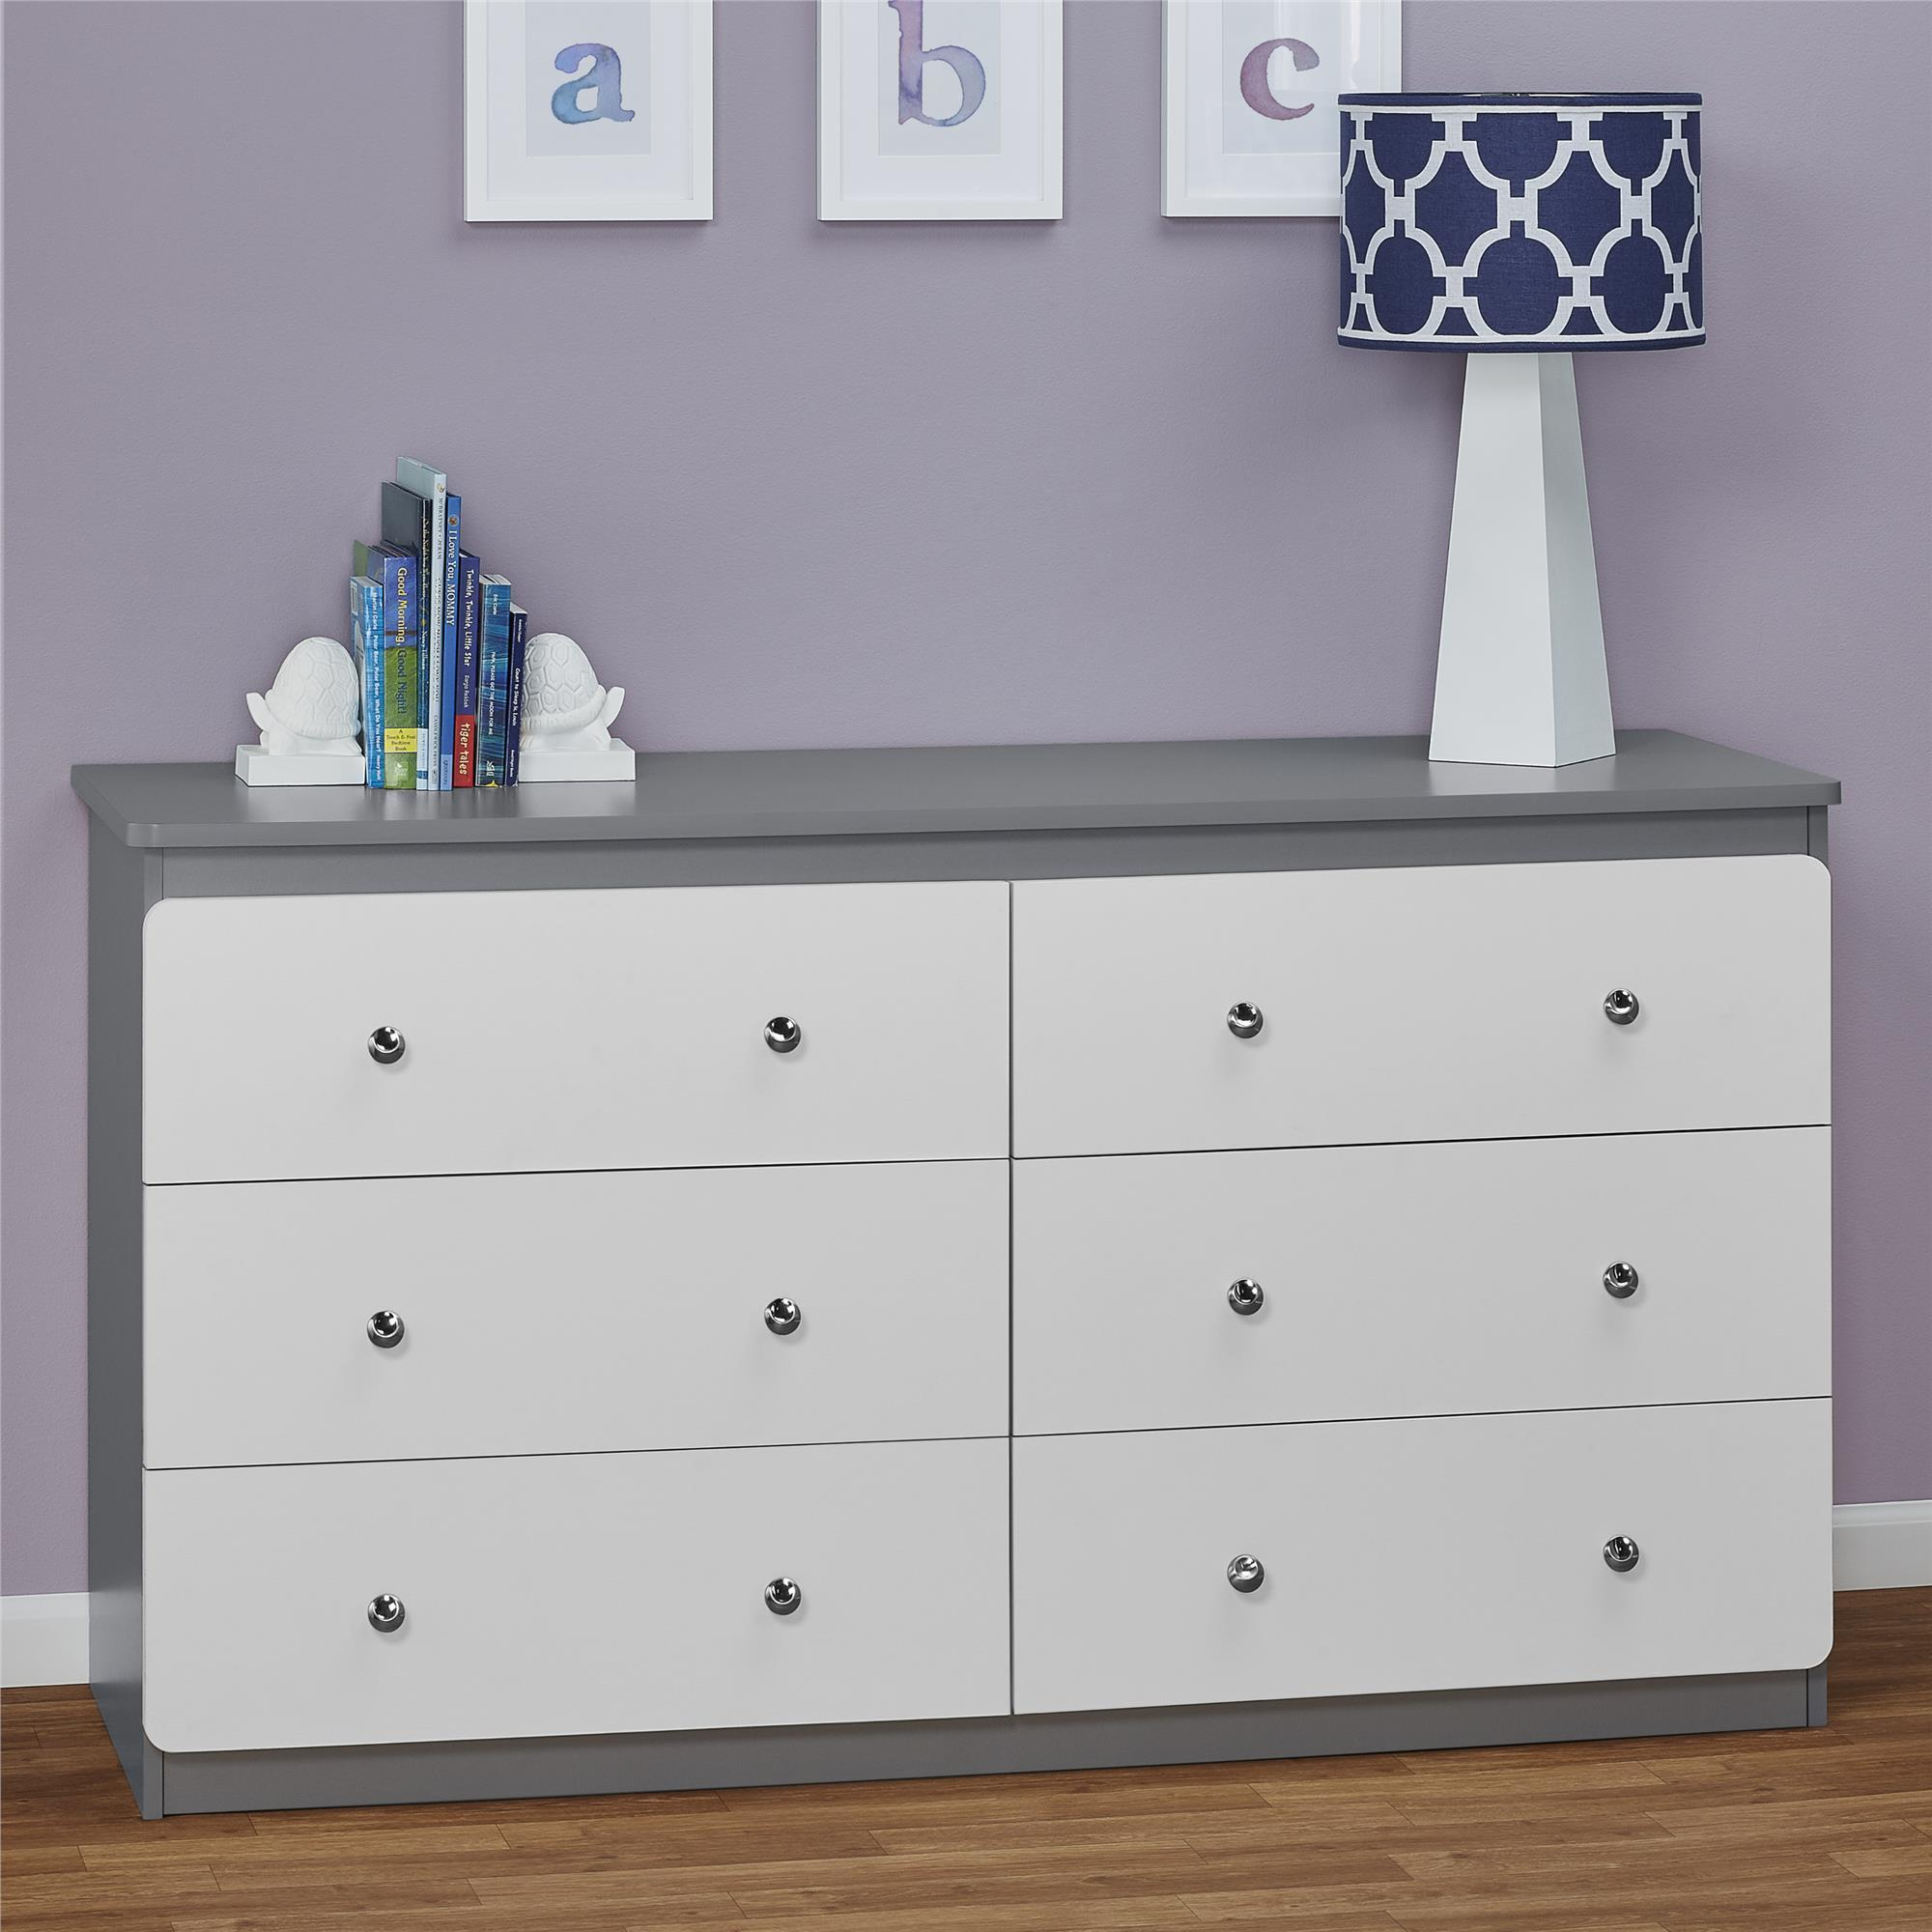 n and for goods cherry clove spices drawer by sets bedroom night dresser mirror bed home d dressers furniture day xiorex